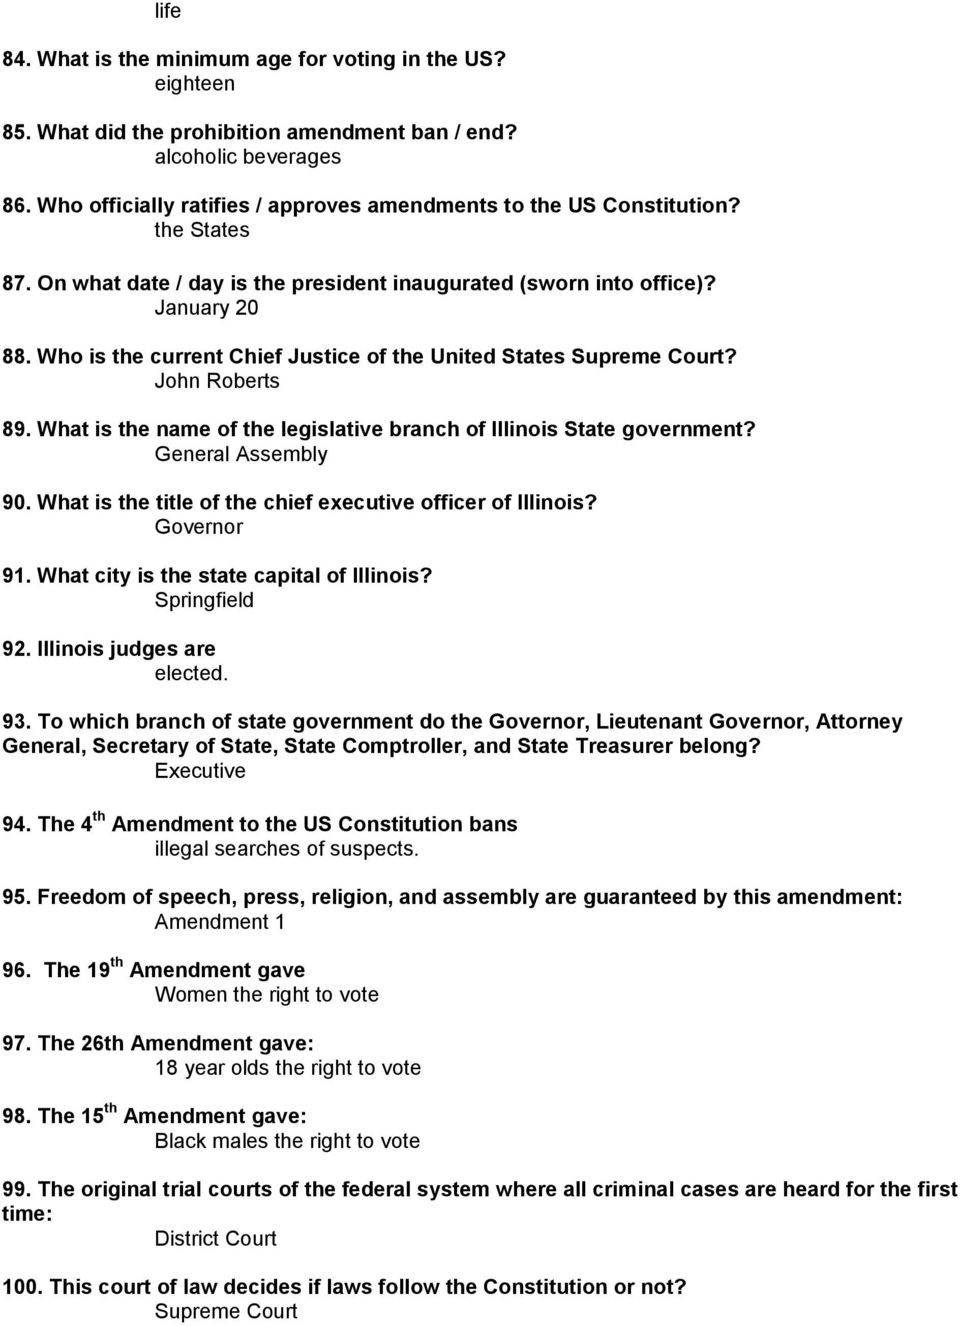 Crete-Monee Middle School U S  Constitution Test Study Guide